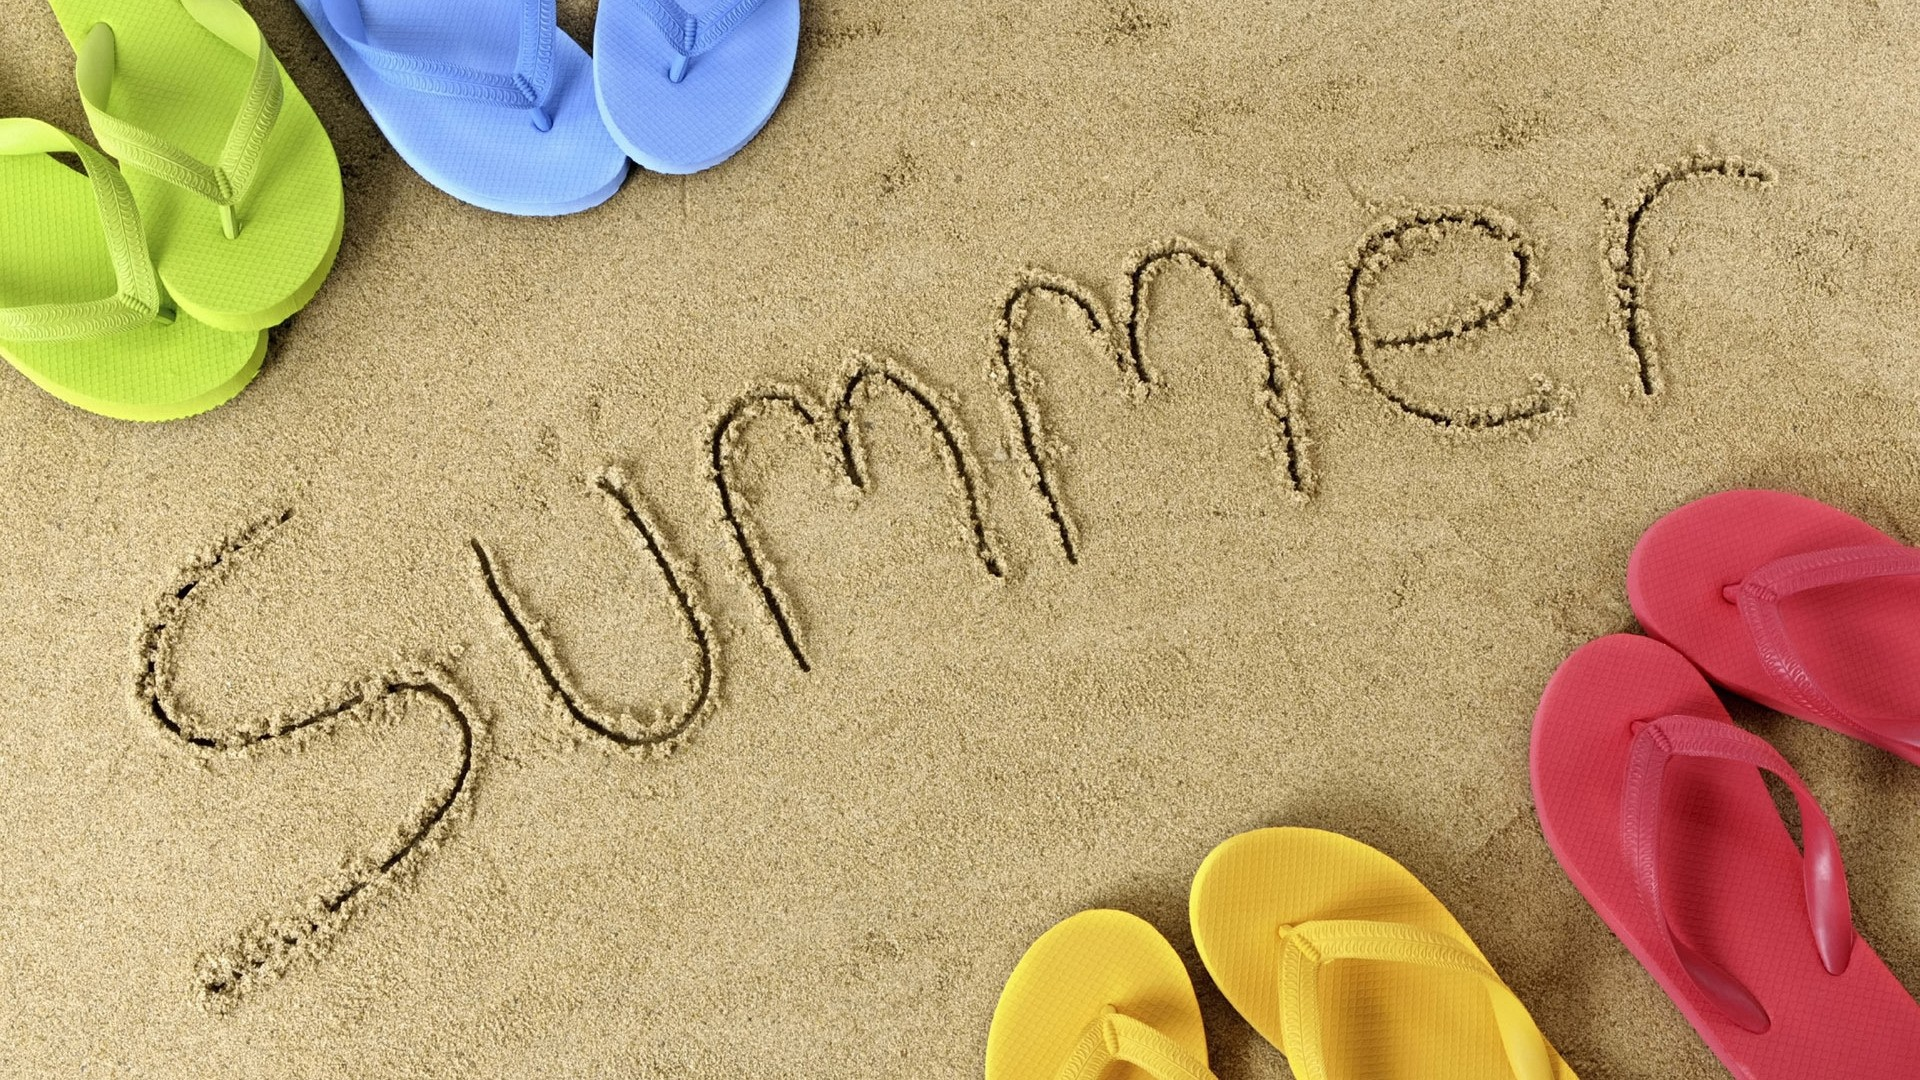 Download Summer Background Images HD Wallpaper of Art 1920x1080